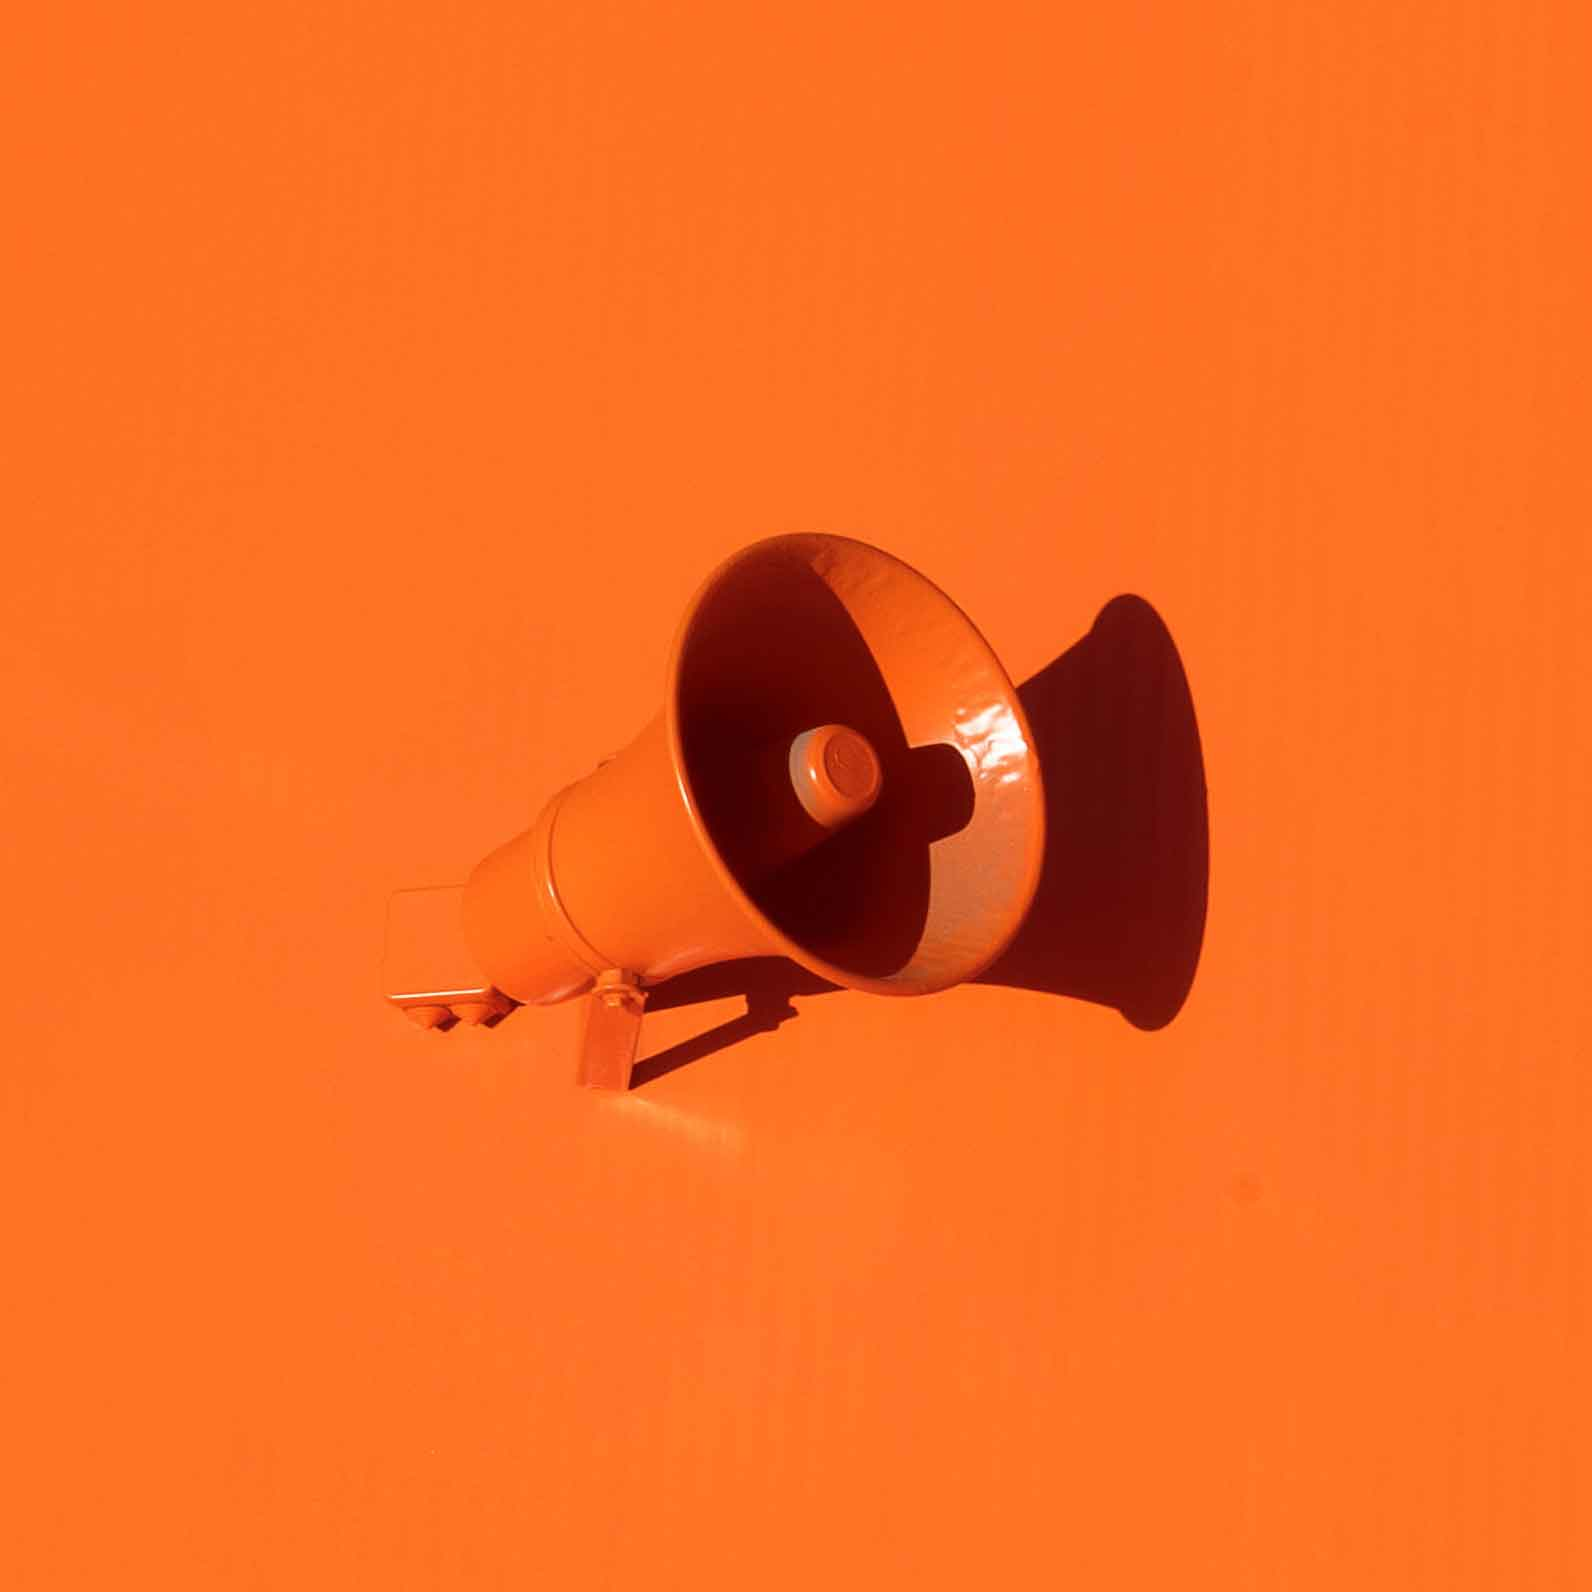 Organge megaphone on an orange background